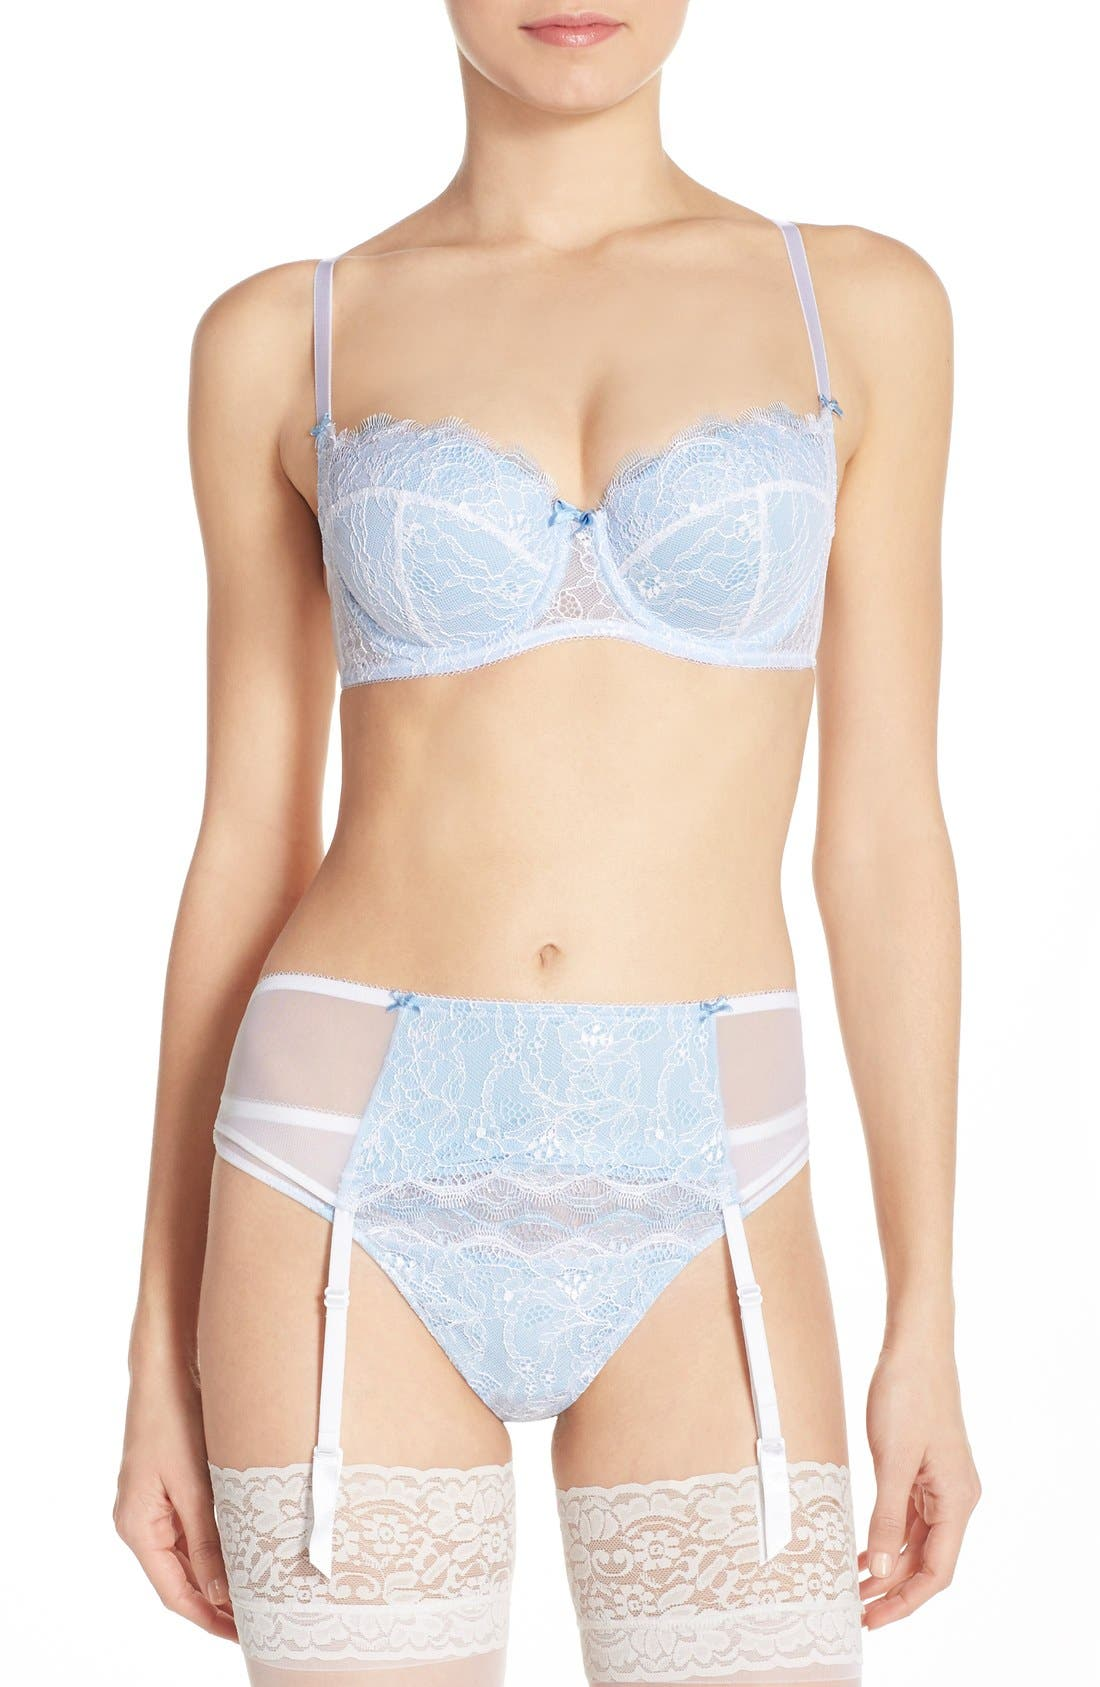 b.tempt'd by Wacoal 'b.sultry' Bra, Thong & Garter Belt